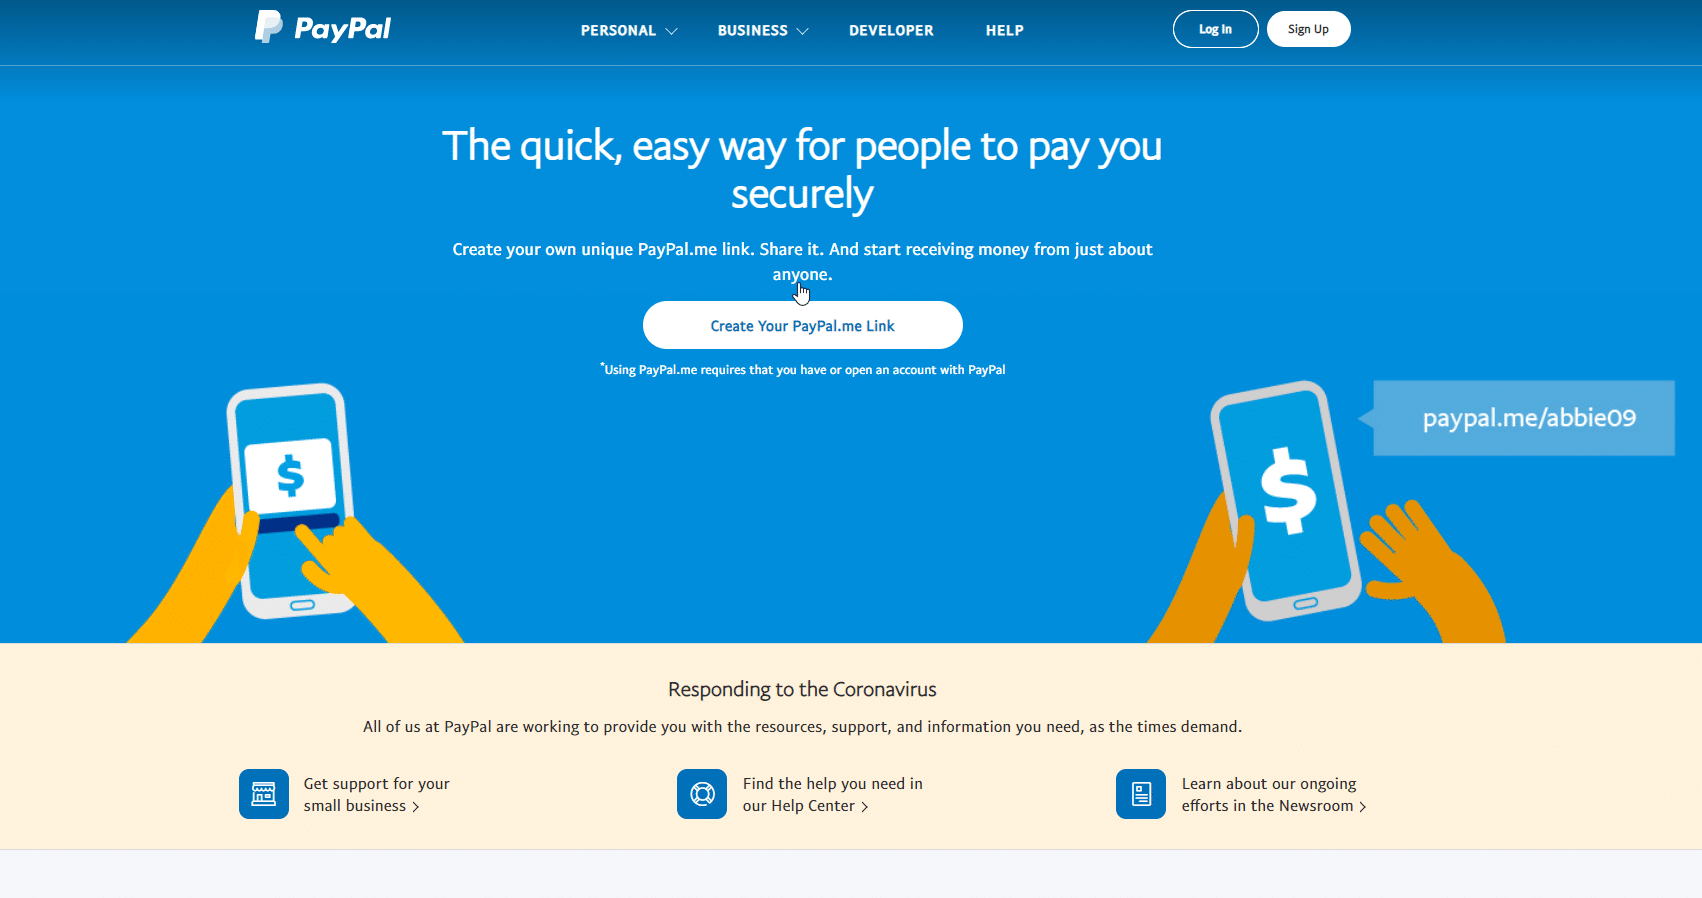 How to Make Money on PayPal: The Online Payment Processor You Need!